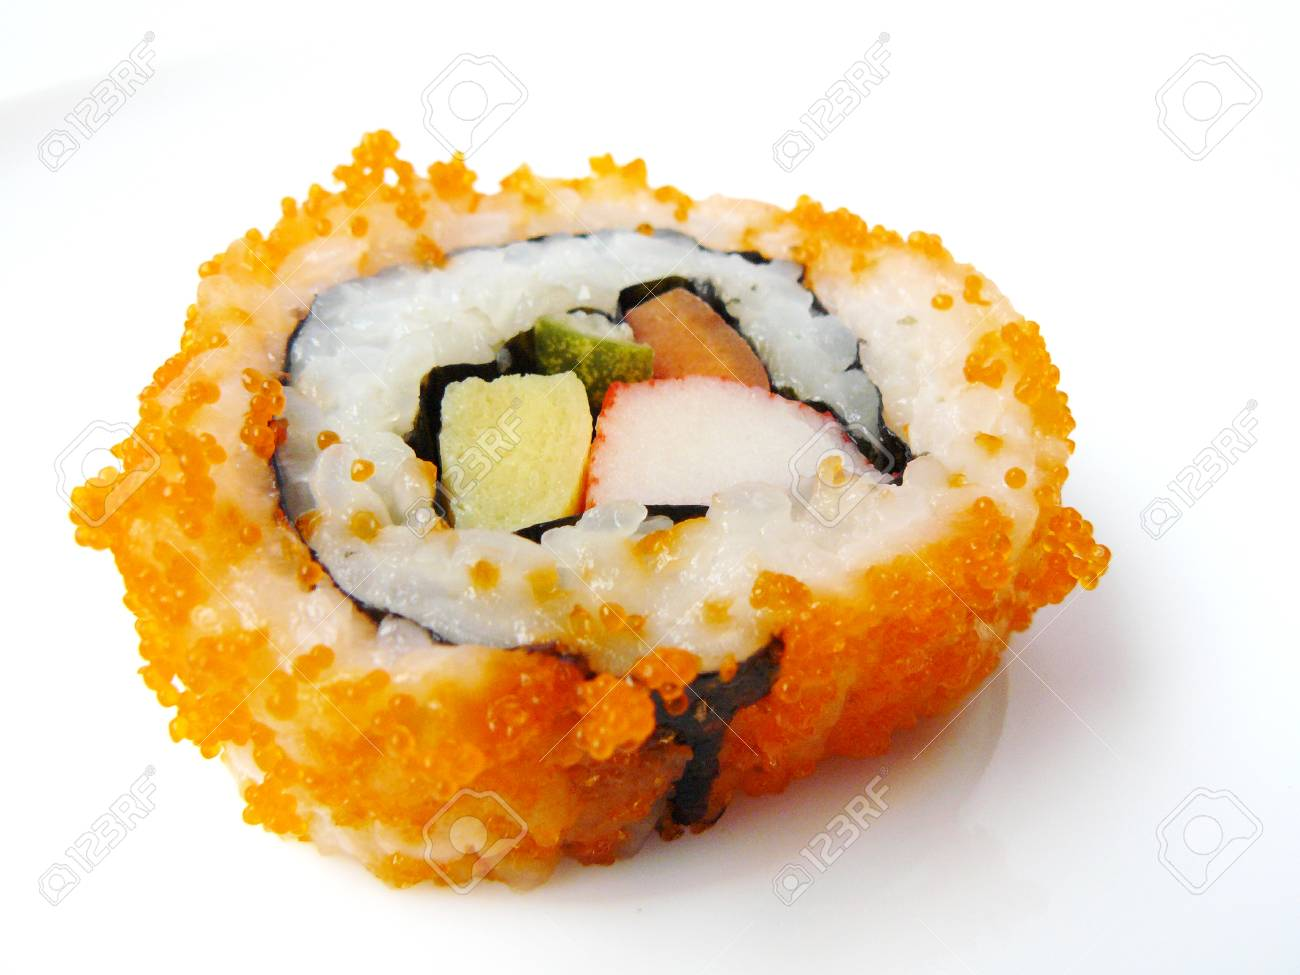 Japanese food  Side view of Flying fish roe seaweed sushi roll